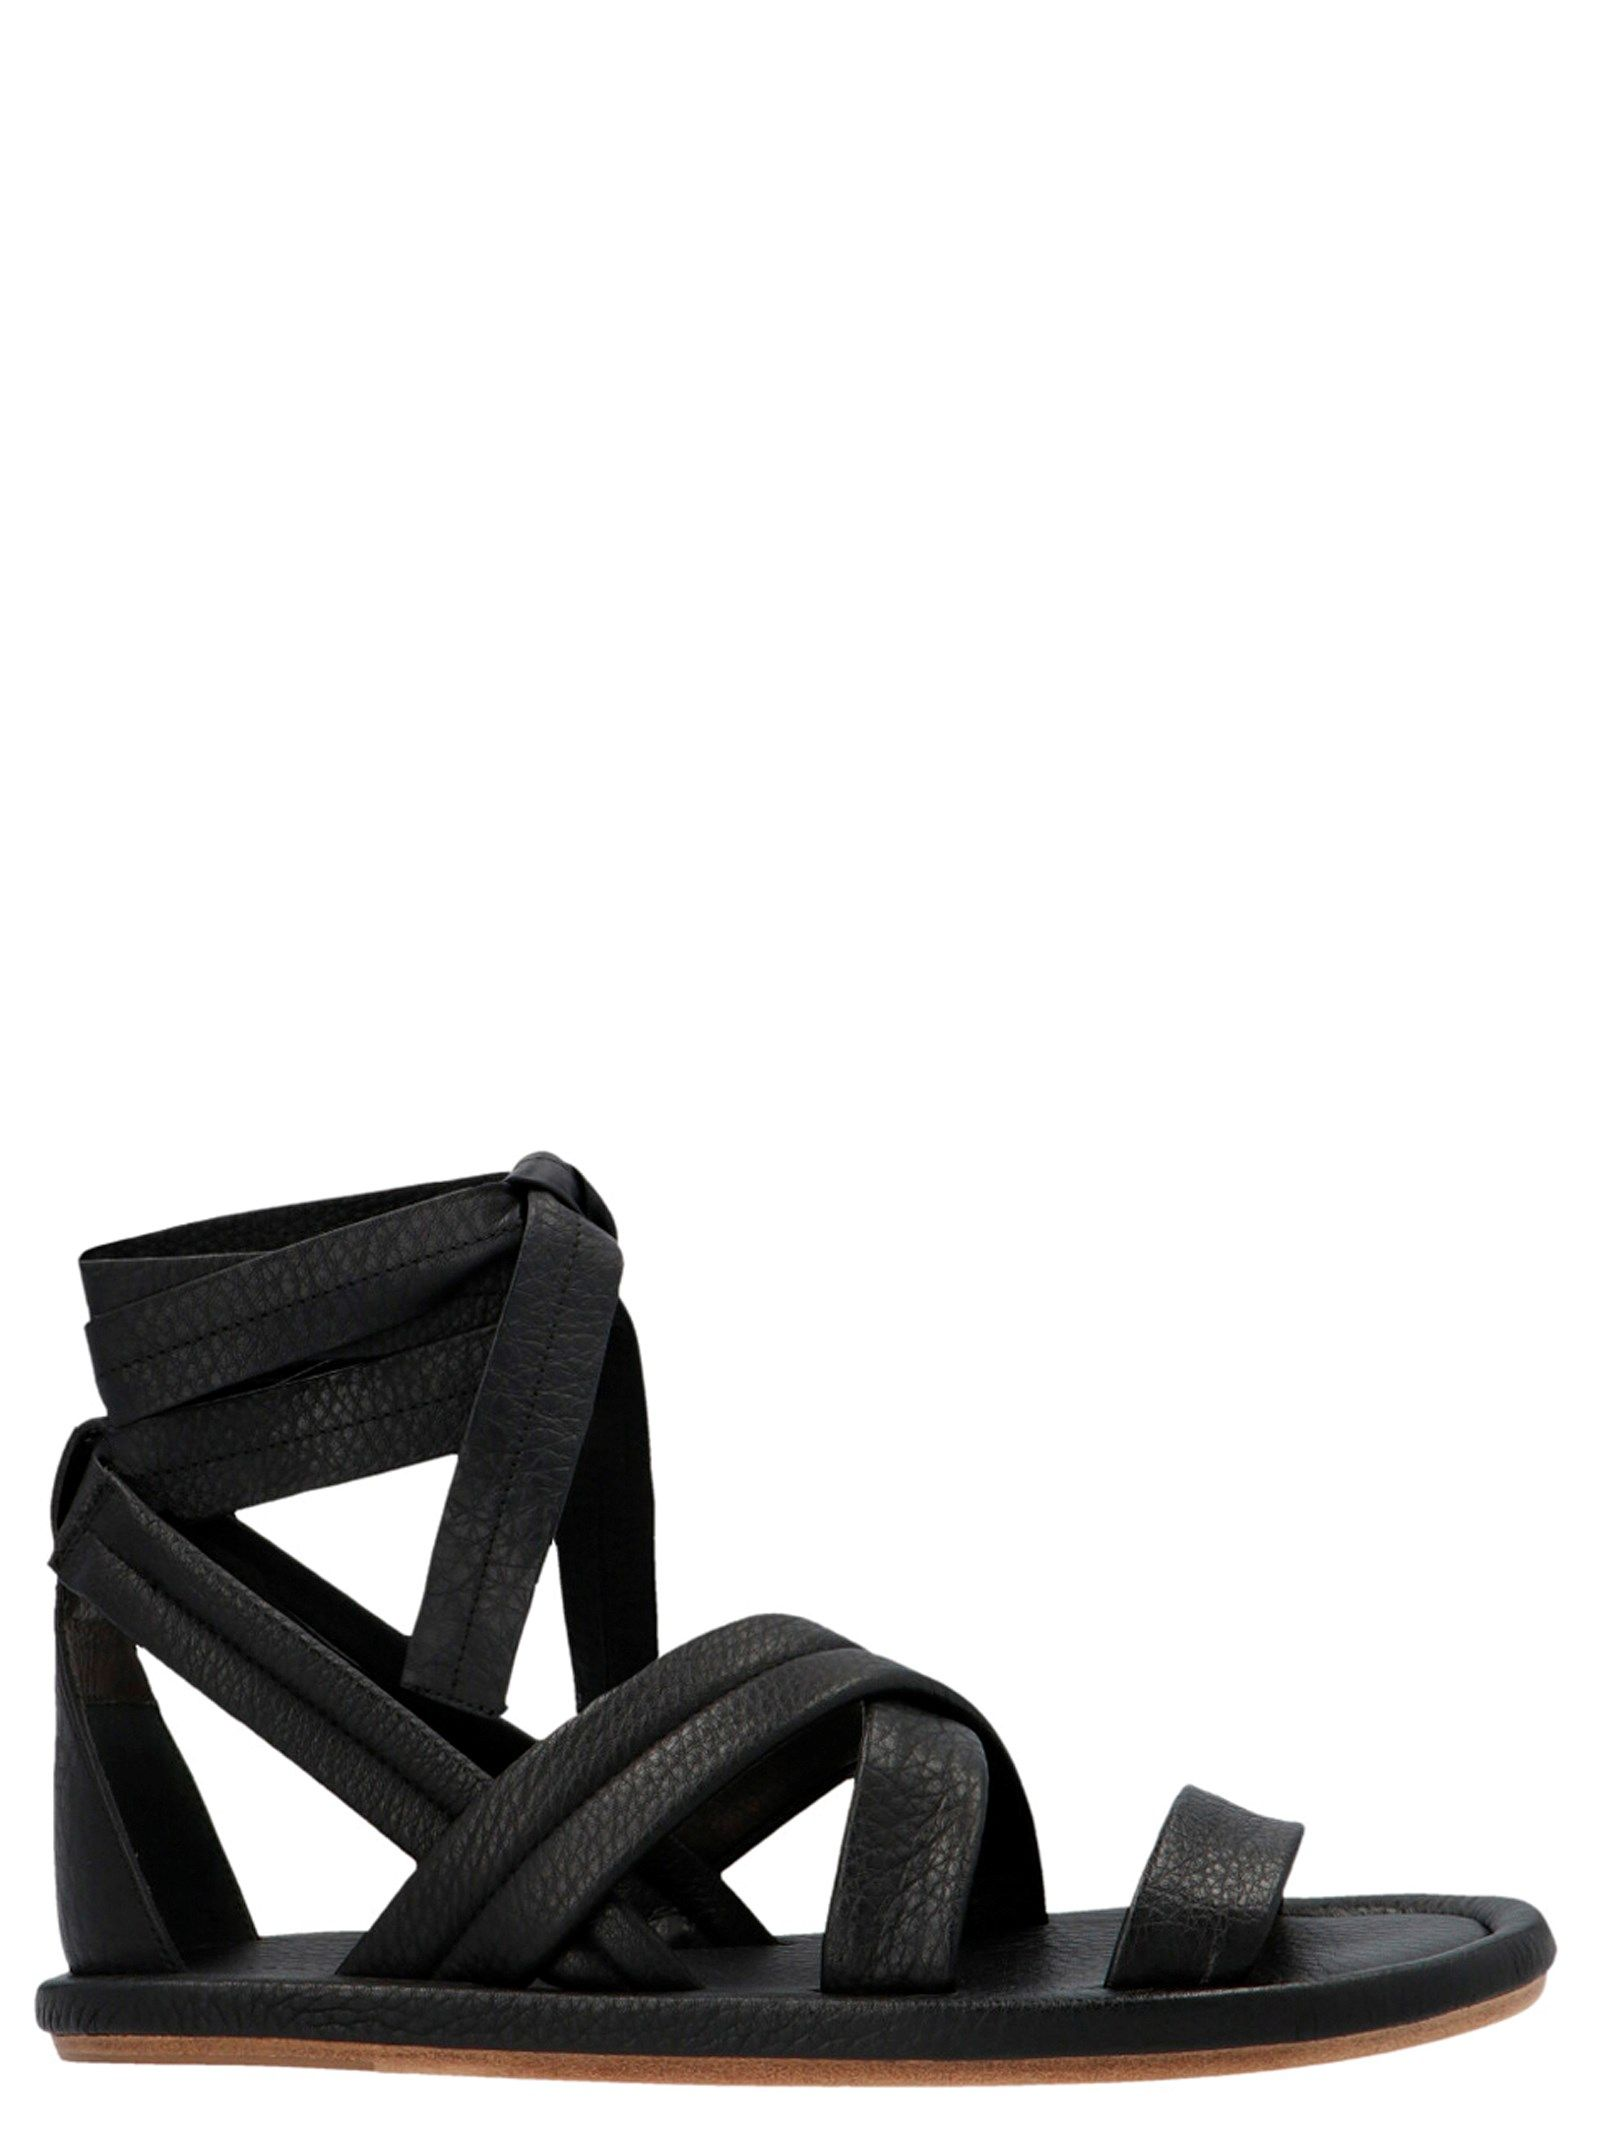 Marsèll MARSELL WOMEN'S MW6263188S330 BLACK OTHER MATERIALS SANDALS